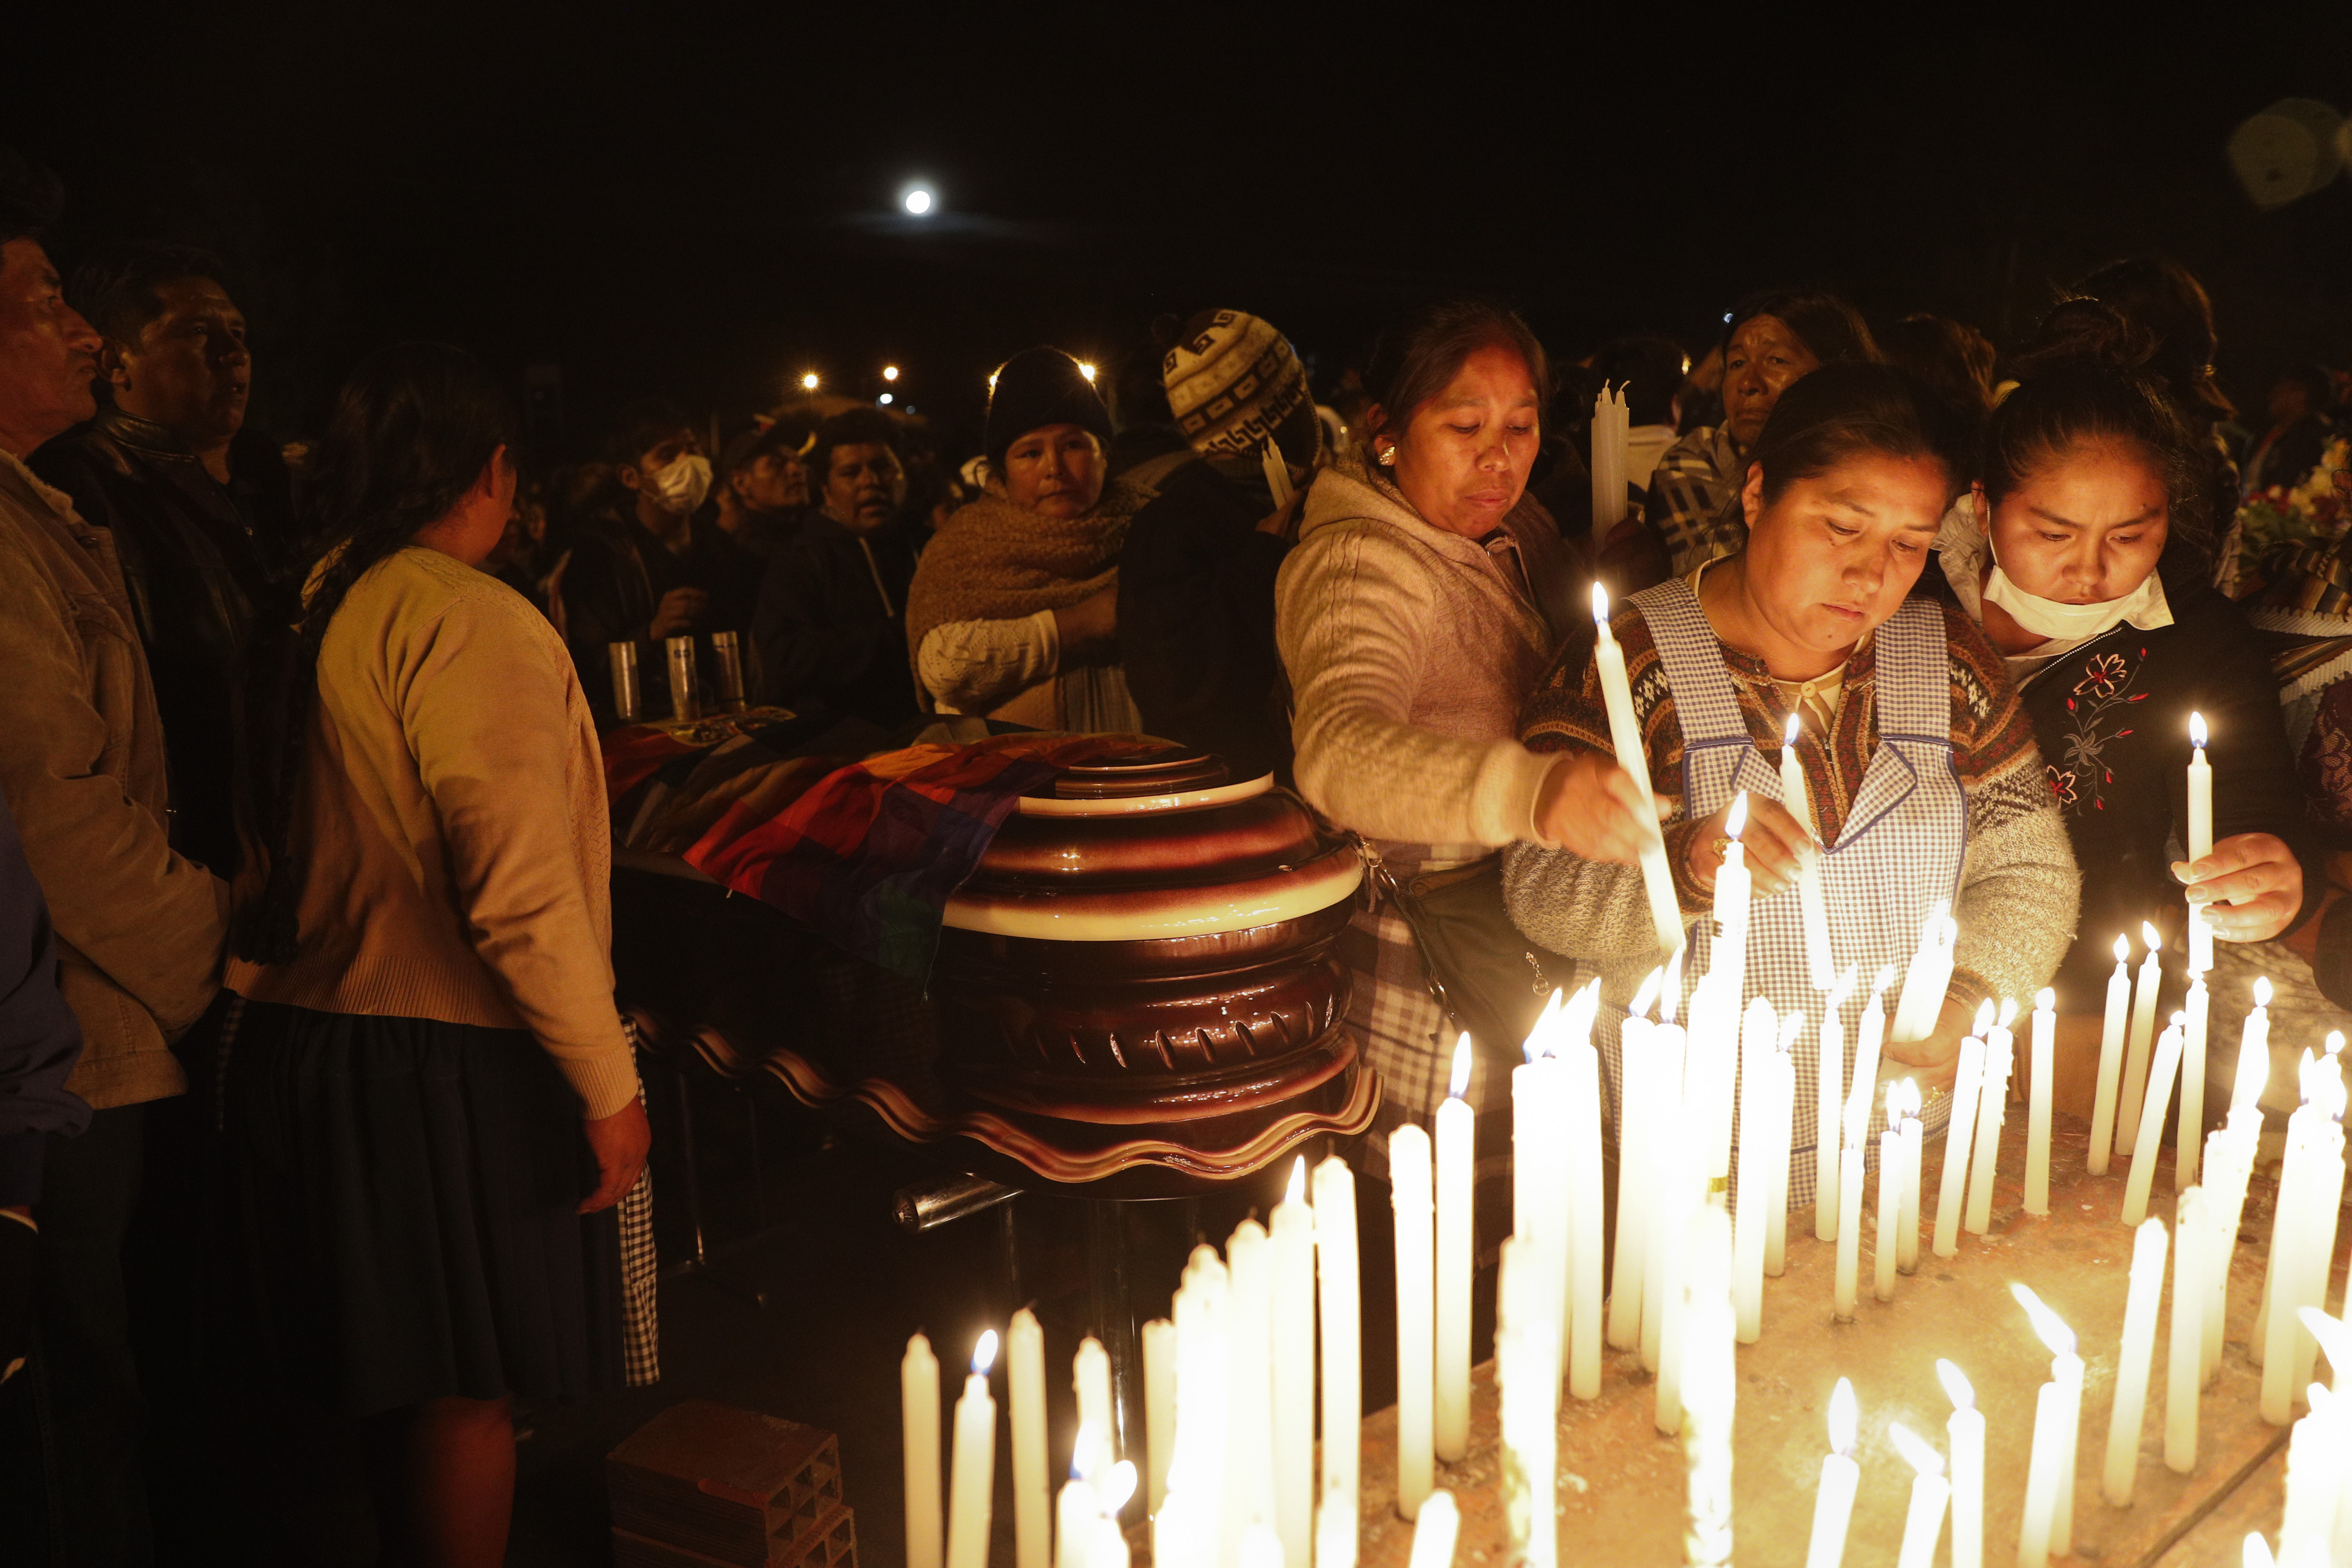 Mourners light candles around coffins of backers of former President Evo Morales that died during clashes with security forces in Sacaba, Bolivia, Friday, Nov. 15, 2019.